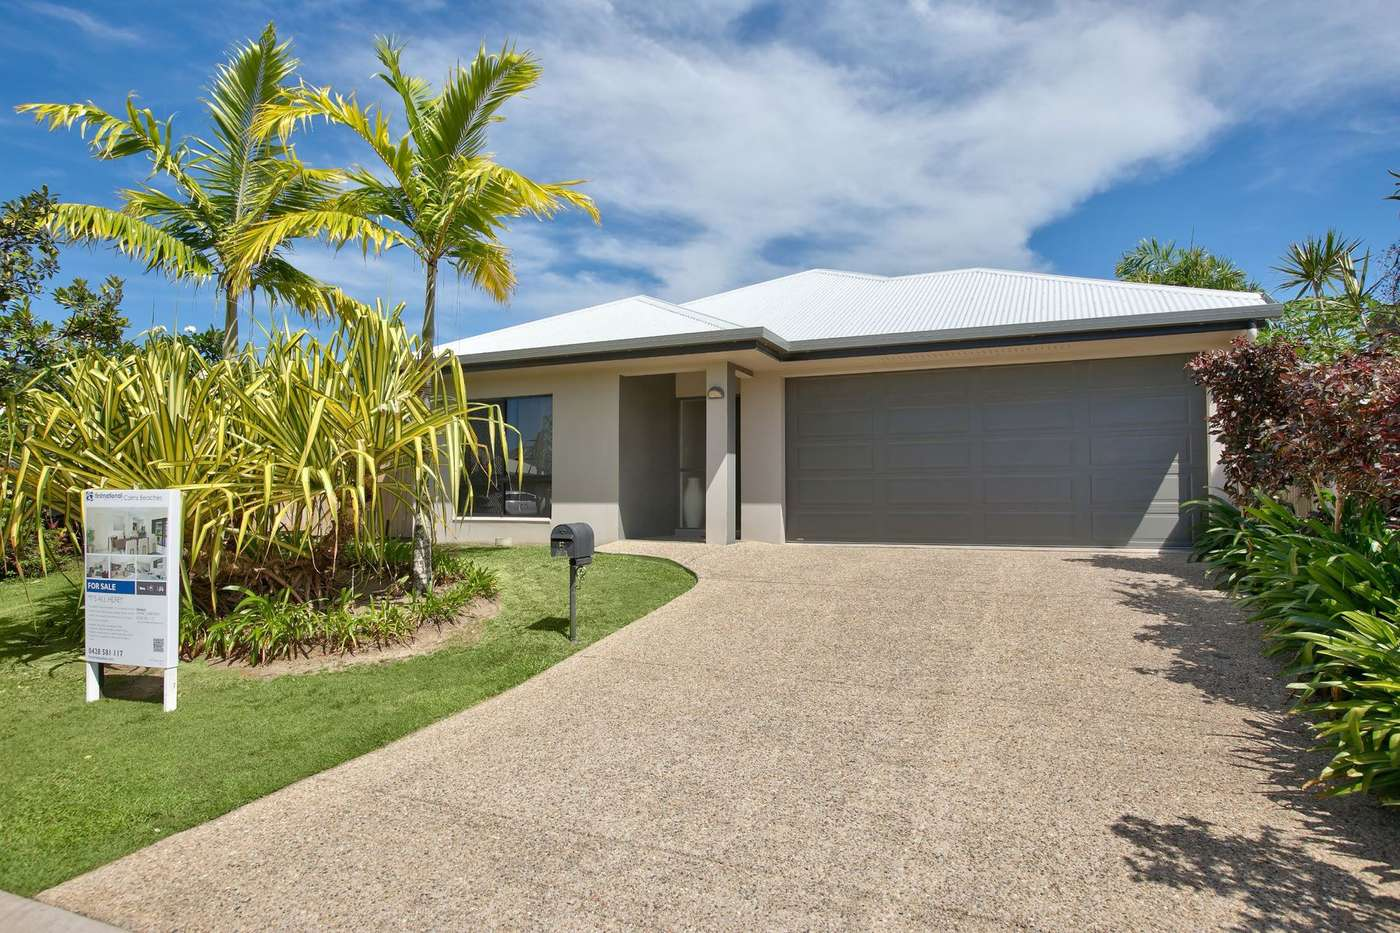 Main view of Homely house listing, 5 Liontown Way, Trinity Park, QLD 4879